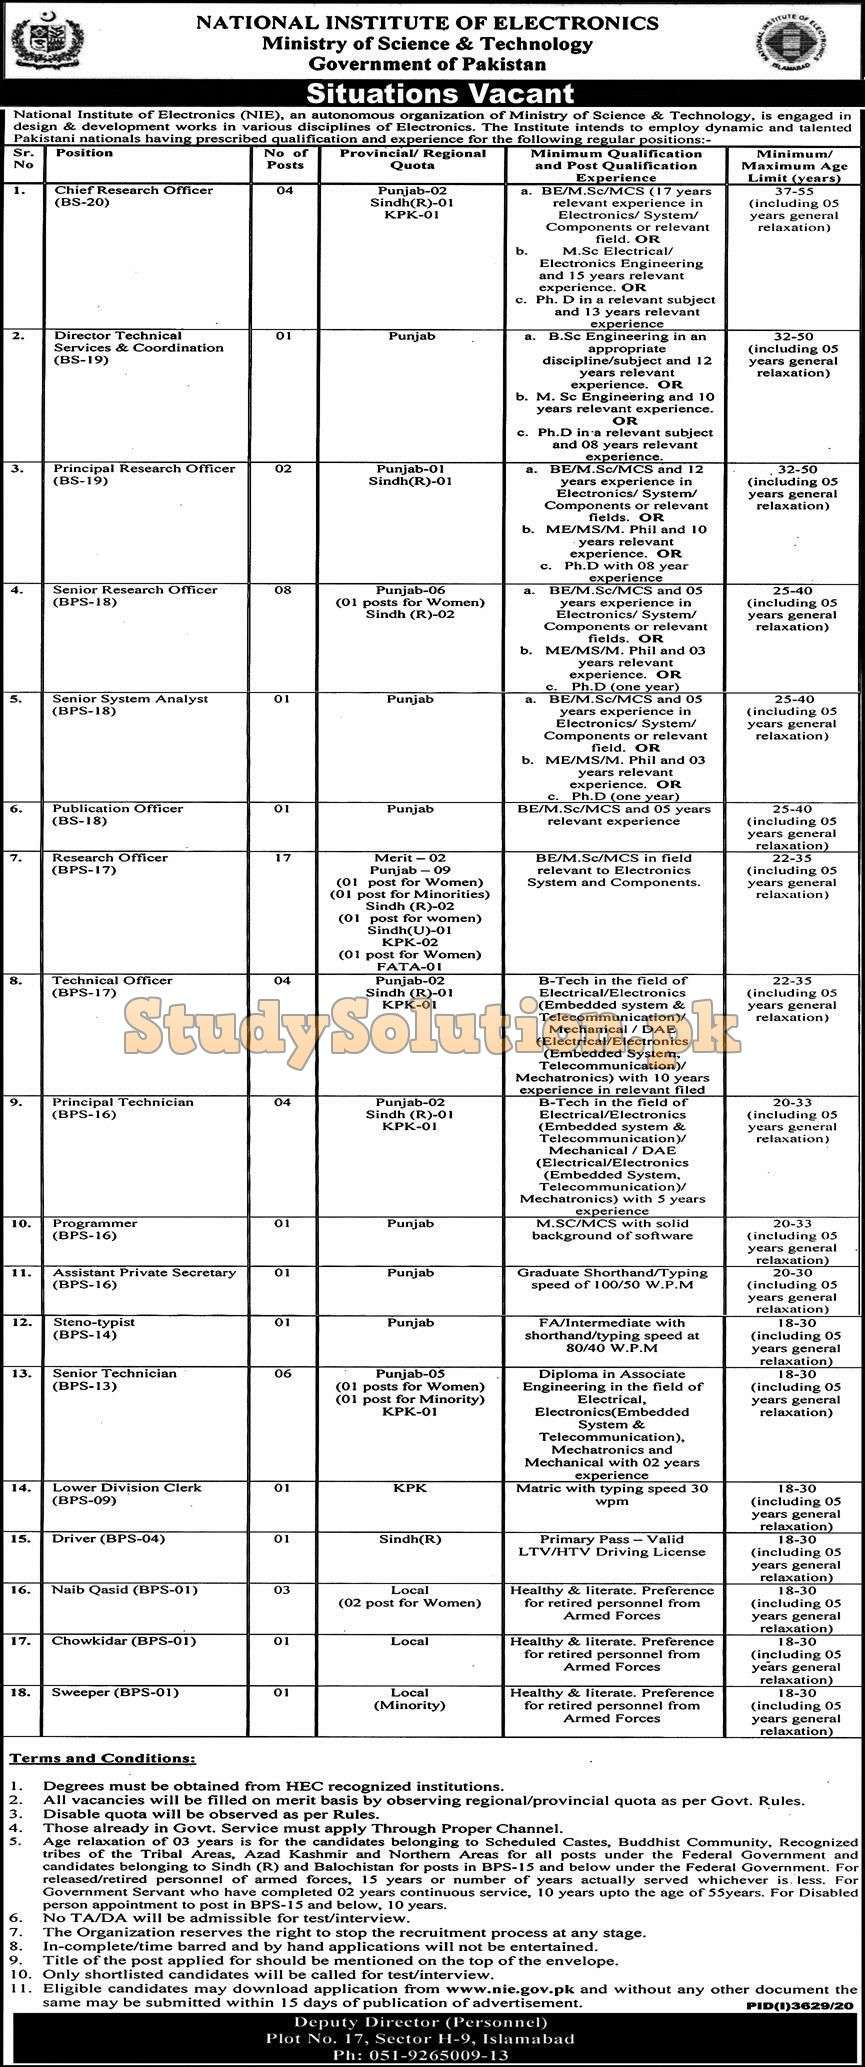 National Institute of Electronics NIE Latest Jobs 2021